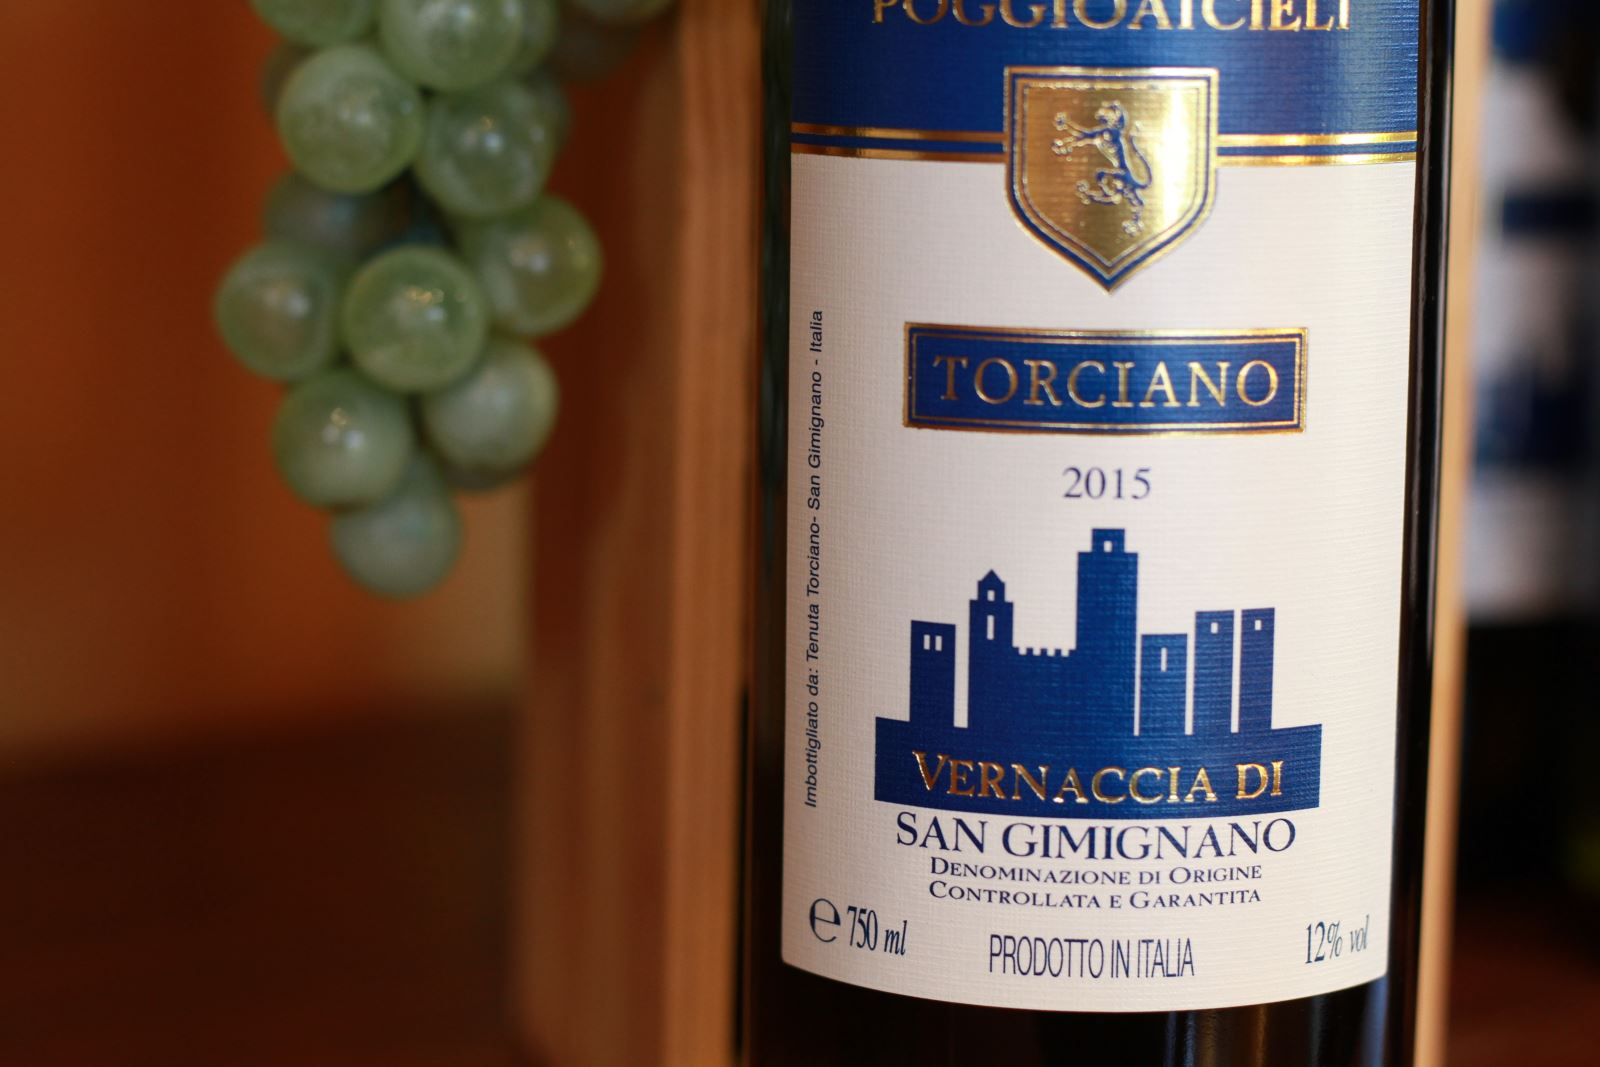 The Vernaccia of San Gimignano D.O.C.G. and its pairing